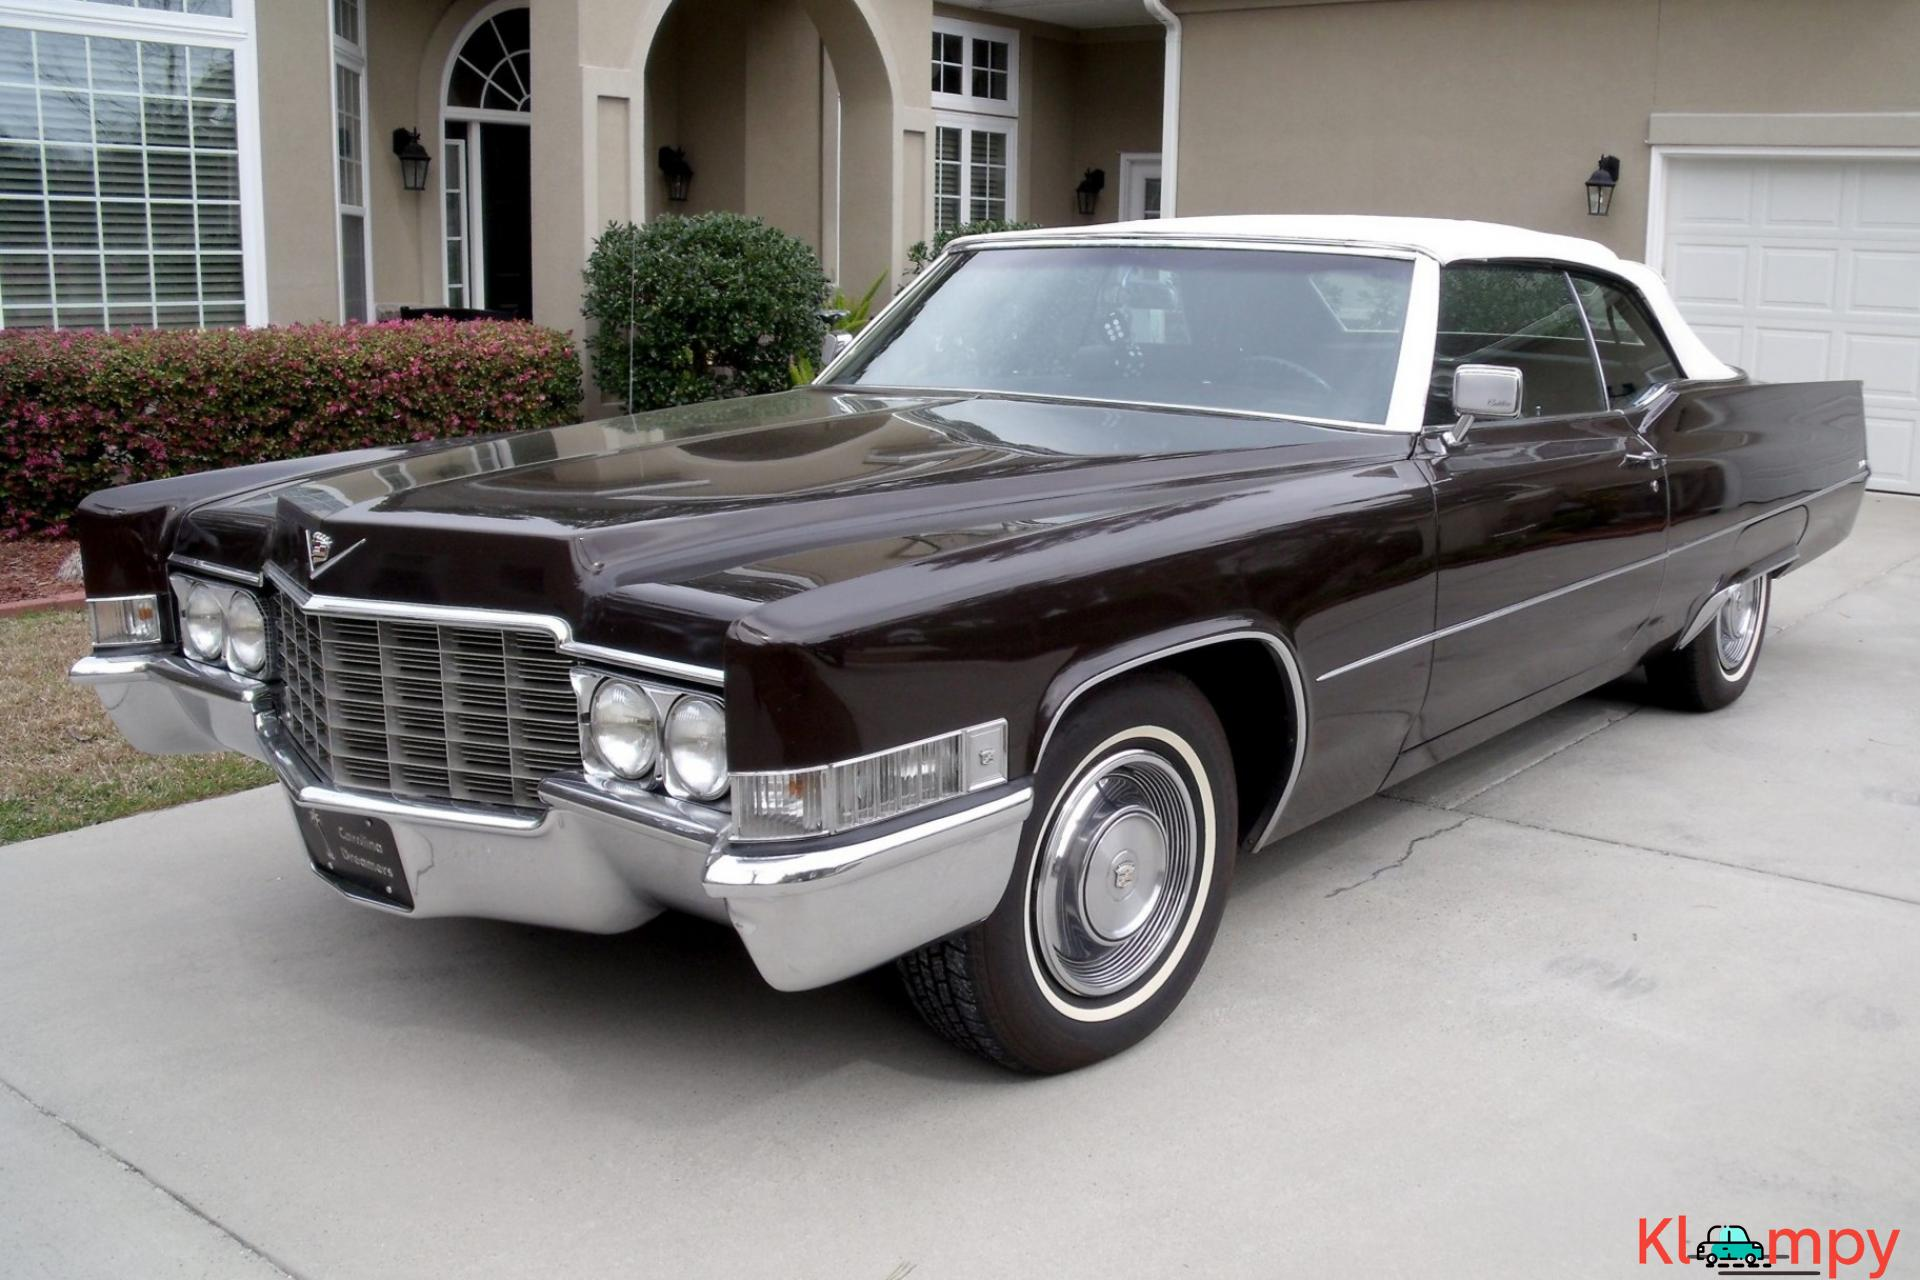 1969 Cadillac DeVille Convertible 472 3-Speed - 1/22